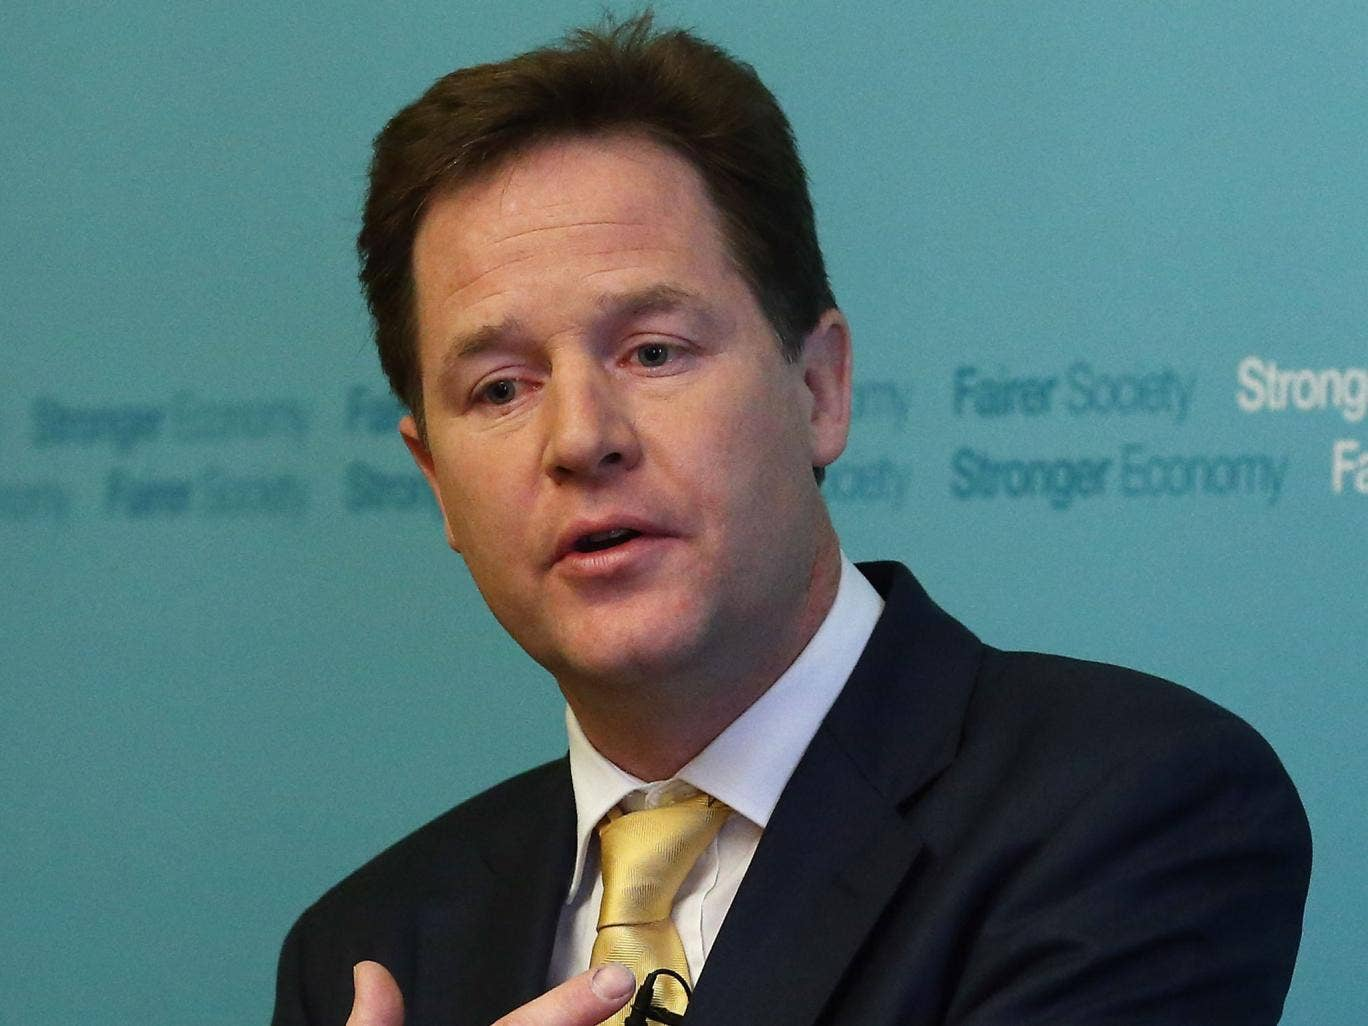 The speech should have been made by David Cameron. Revealingly, it was made by Nick Clegg